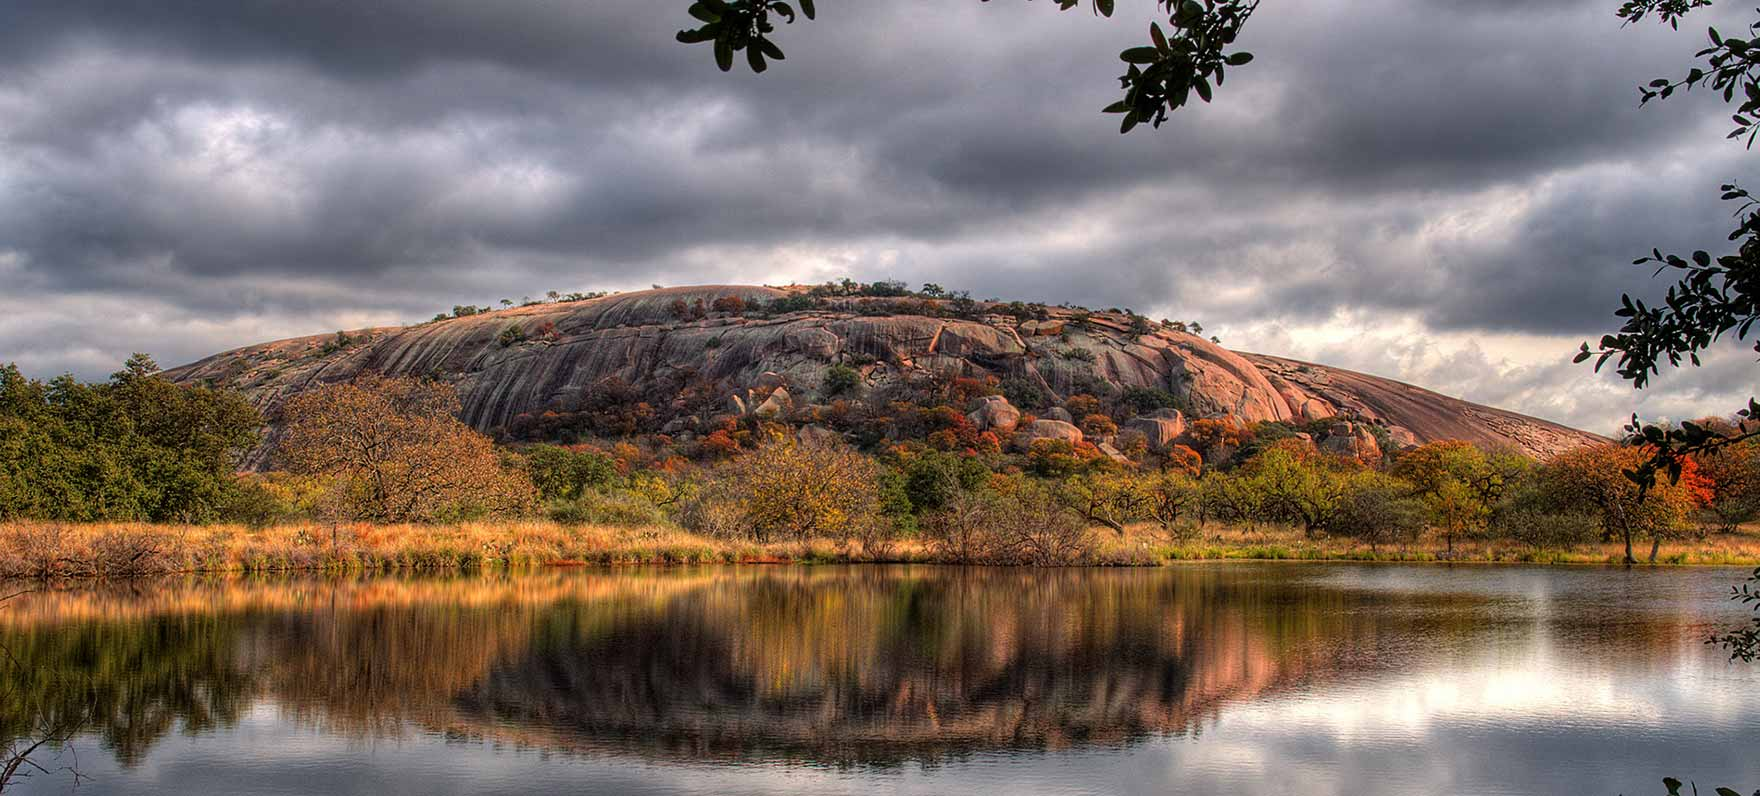 Legend states Tonkawa Indians named this popular 425-foot pink granite batholith, believing a Spanish conquistador cast a spell on it, making magical ghost fires glow at the top.